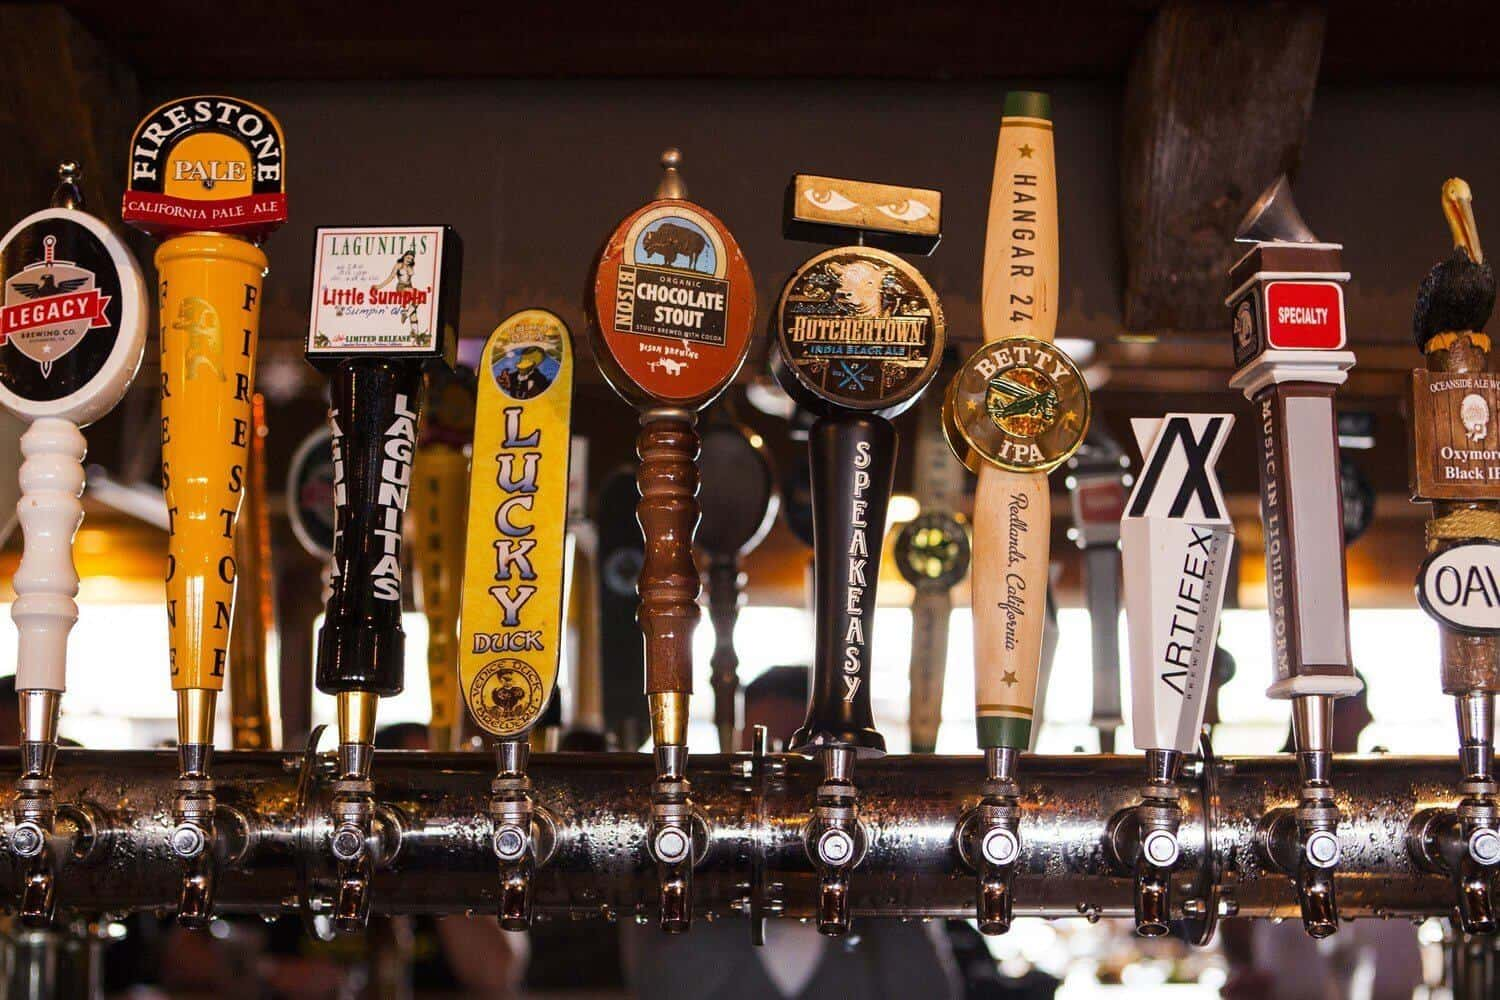 Mission Ave Bar & Grill Beer Tap